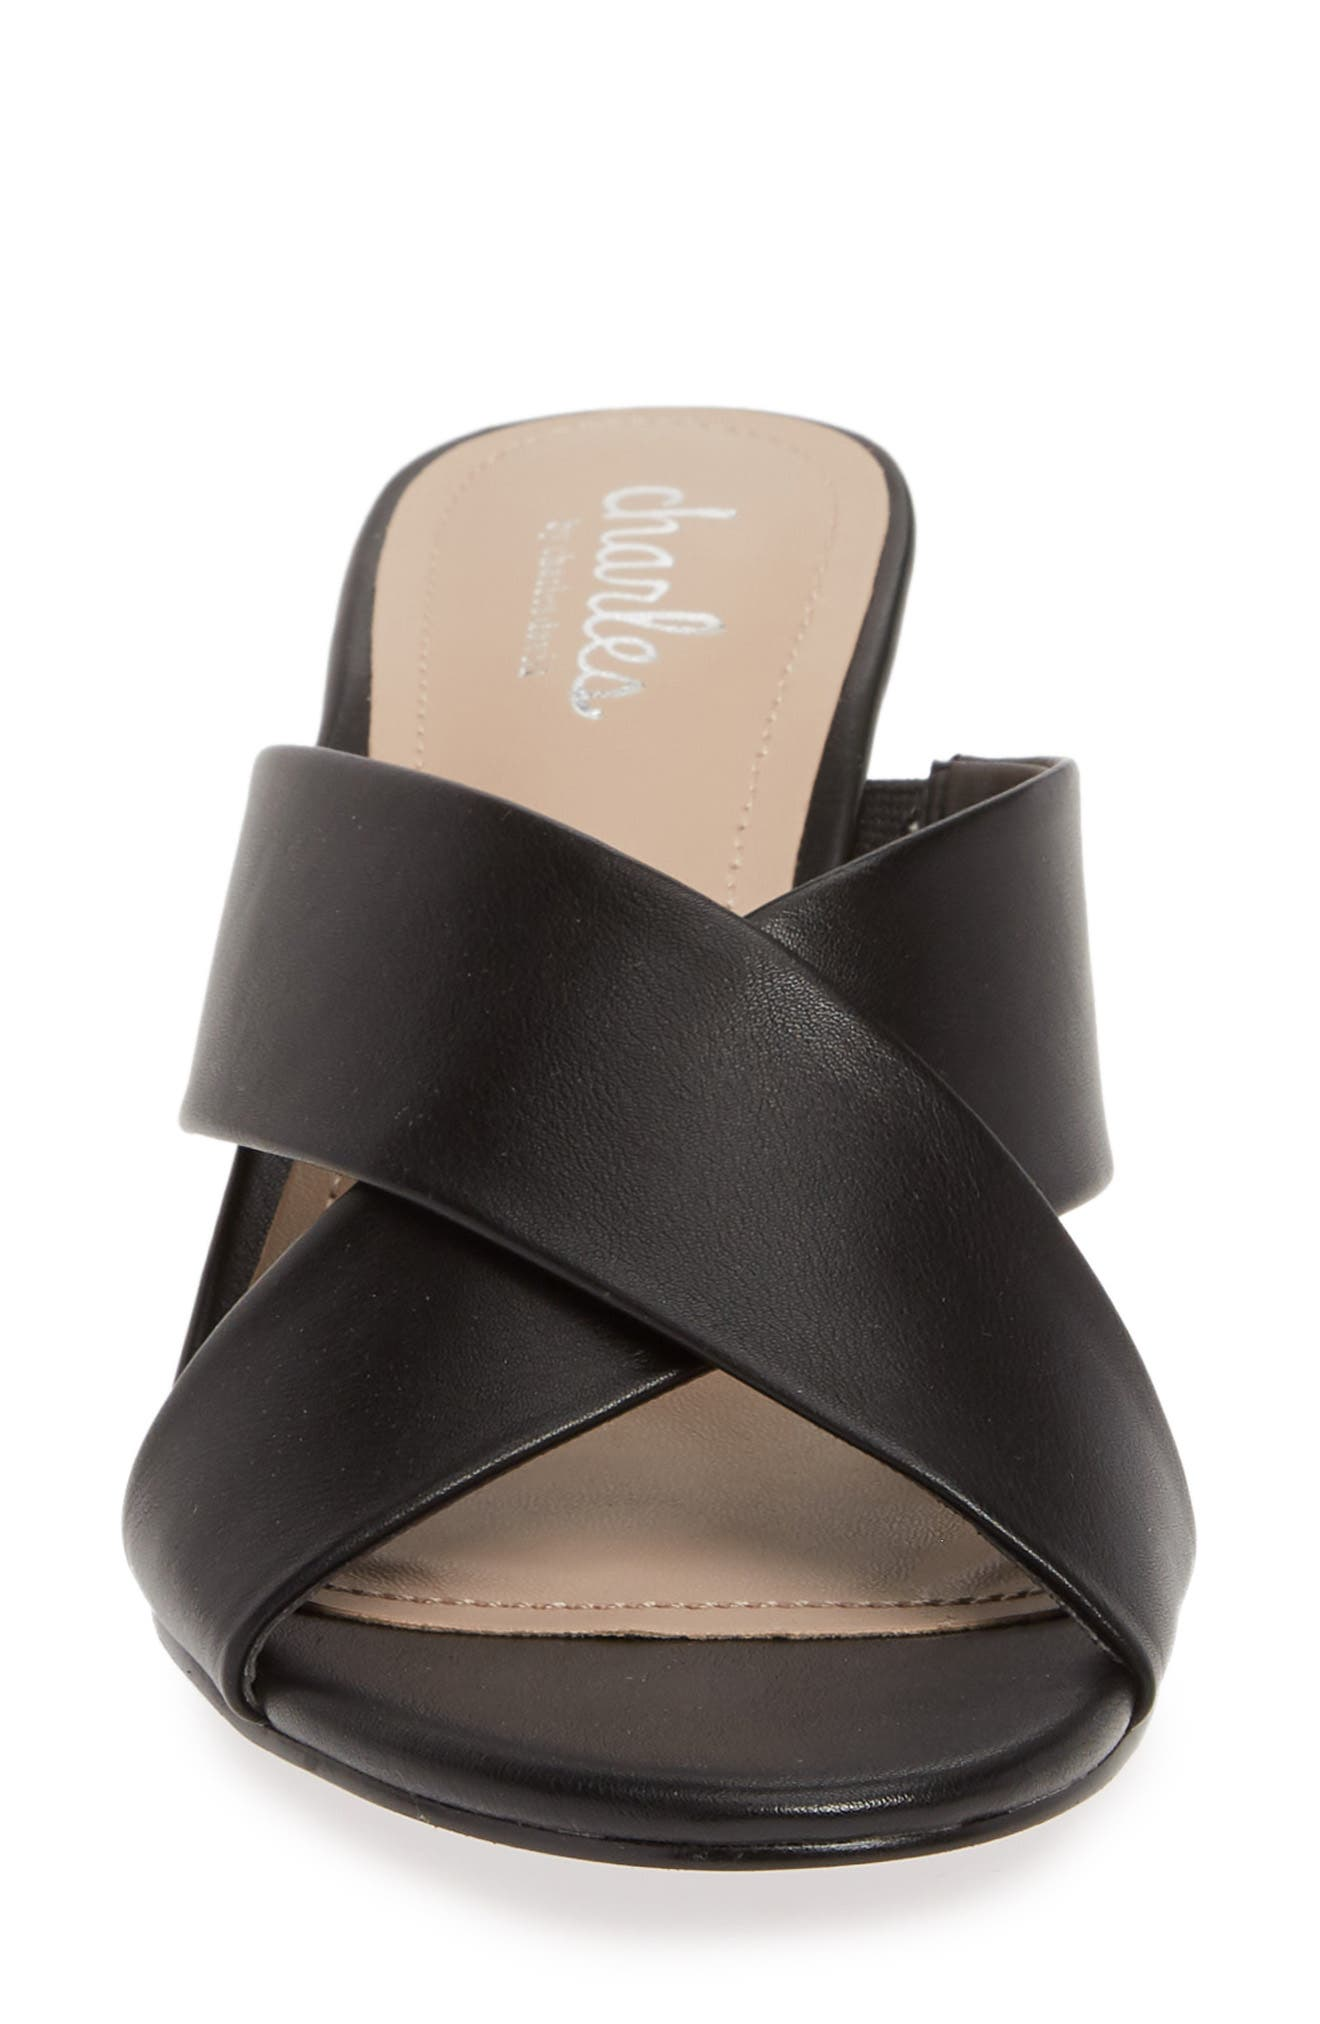 CHARLES BY CHARLES DAVID, Grady Slide Sandal, Alternate thumbnail 4, color, BLACK FAUX LEATHER